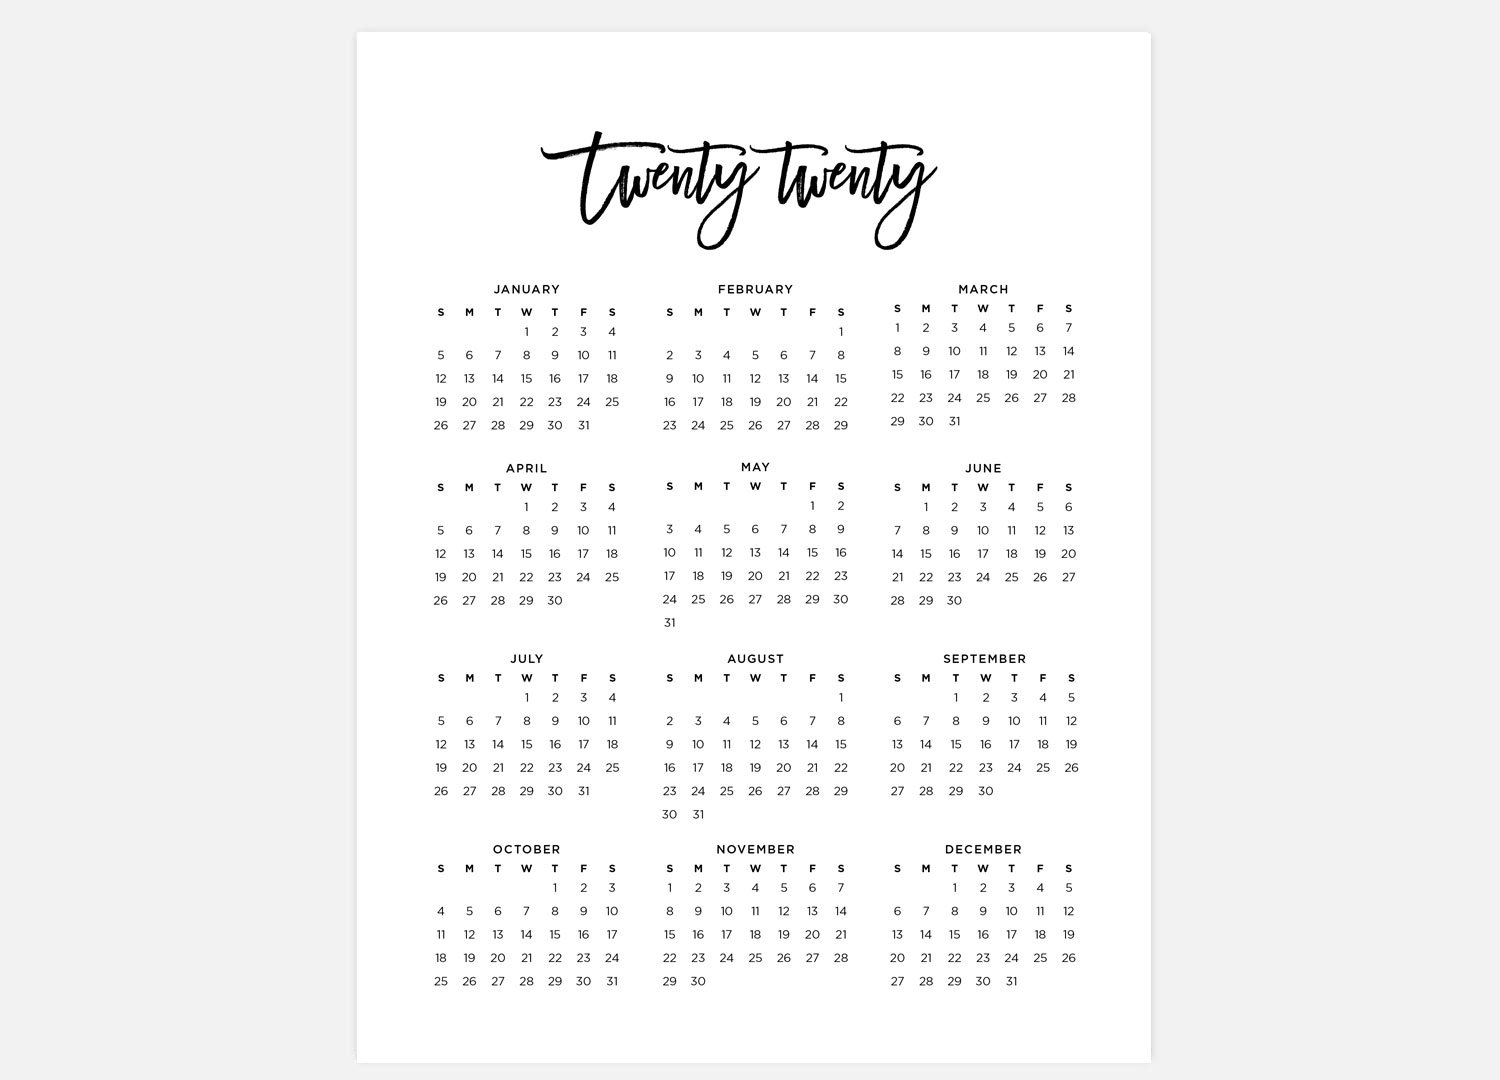 2020, Calendar, Simple Calendar, 2020 Year Calendar, 2020 Calendars, 2020  Year Planner, Wall Calendar, Printable Calendar, 2020 At A Glance regarding Printable Year At Glance Calendar For 2020